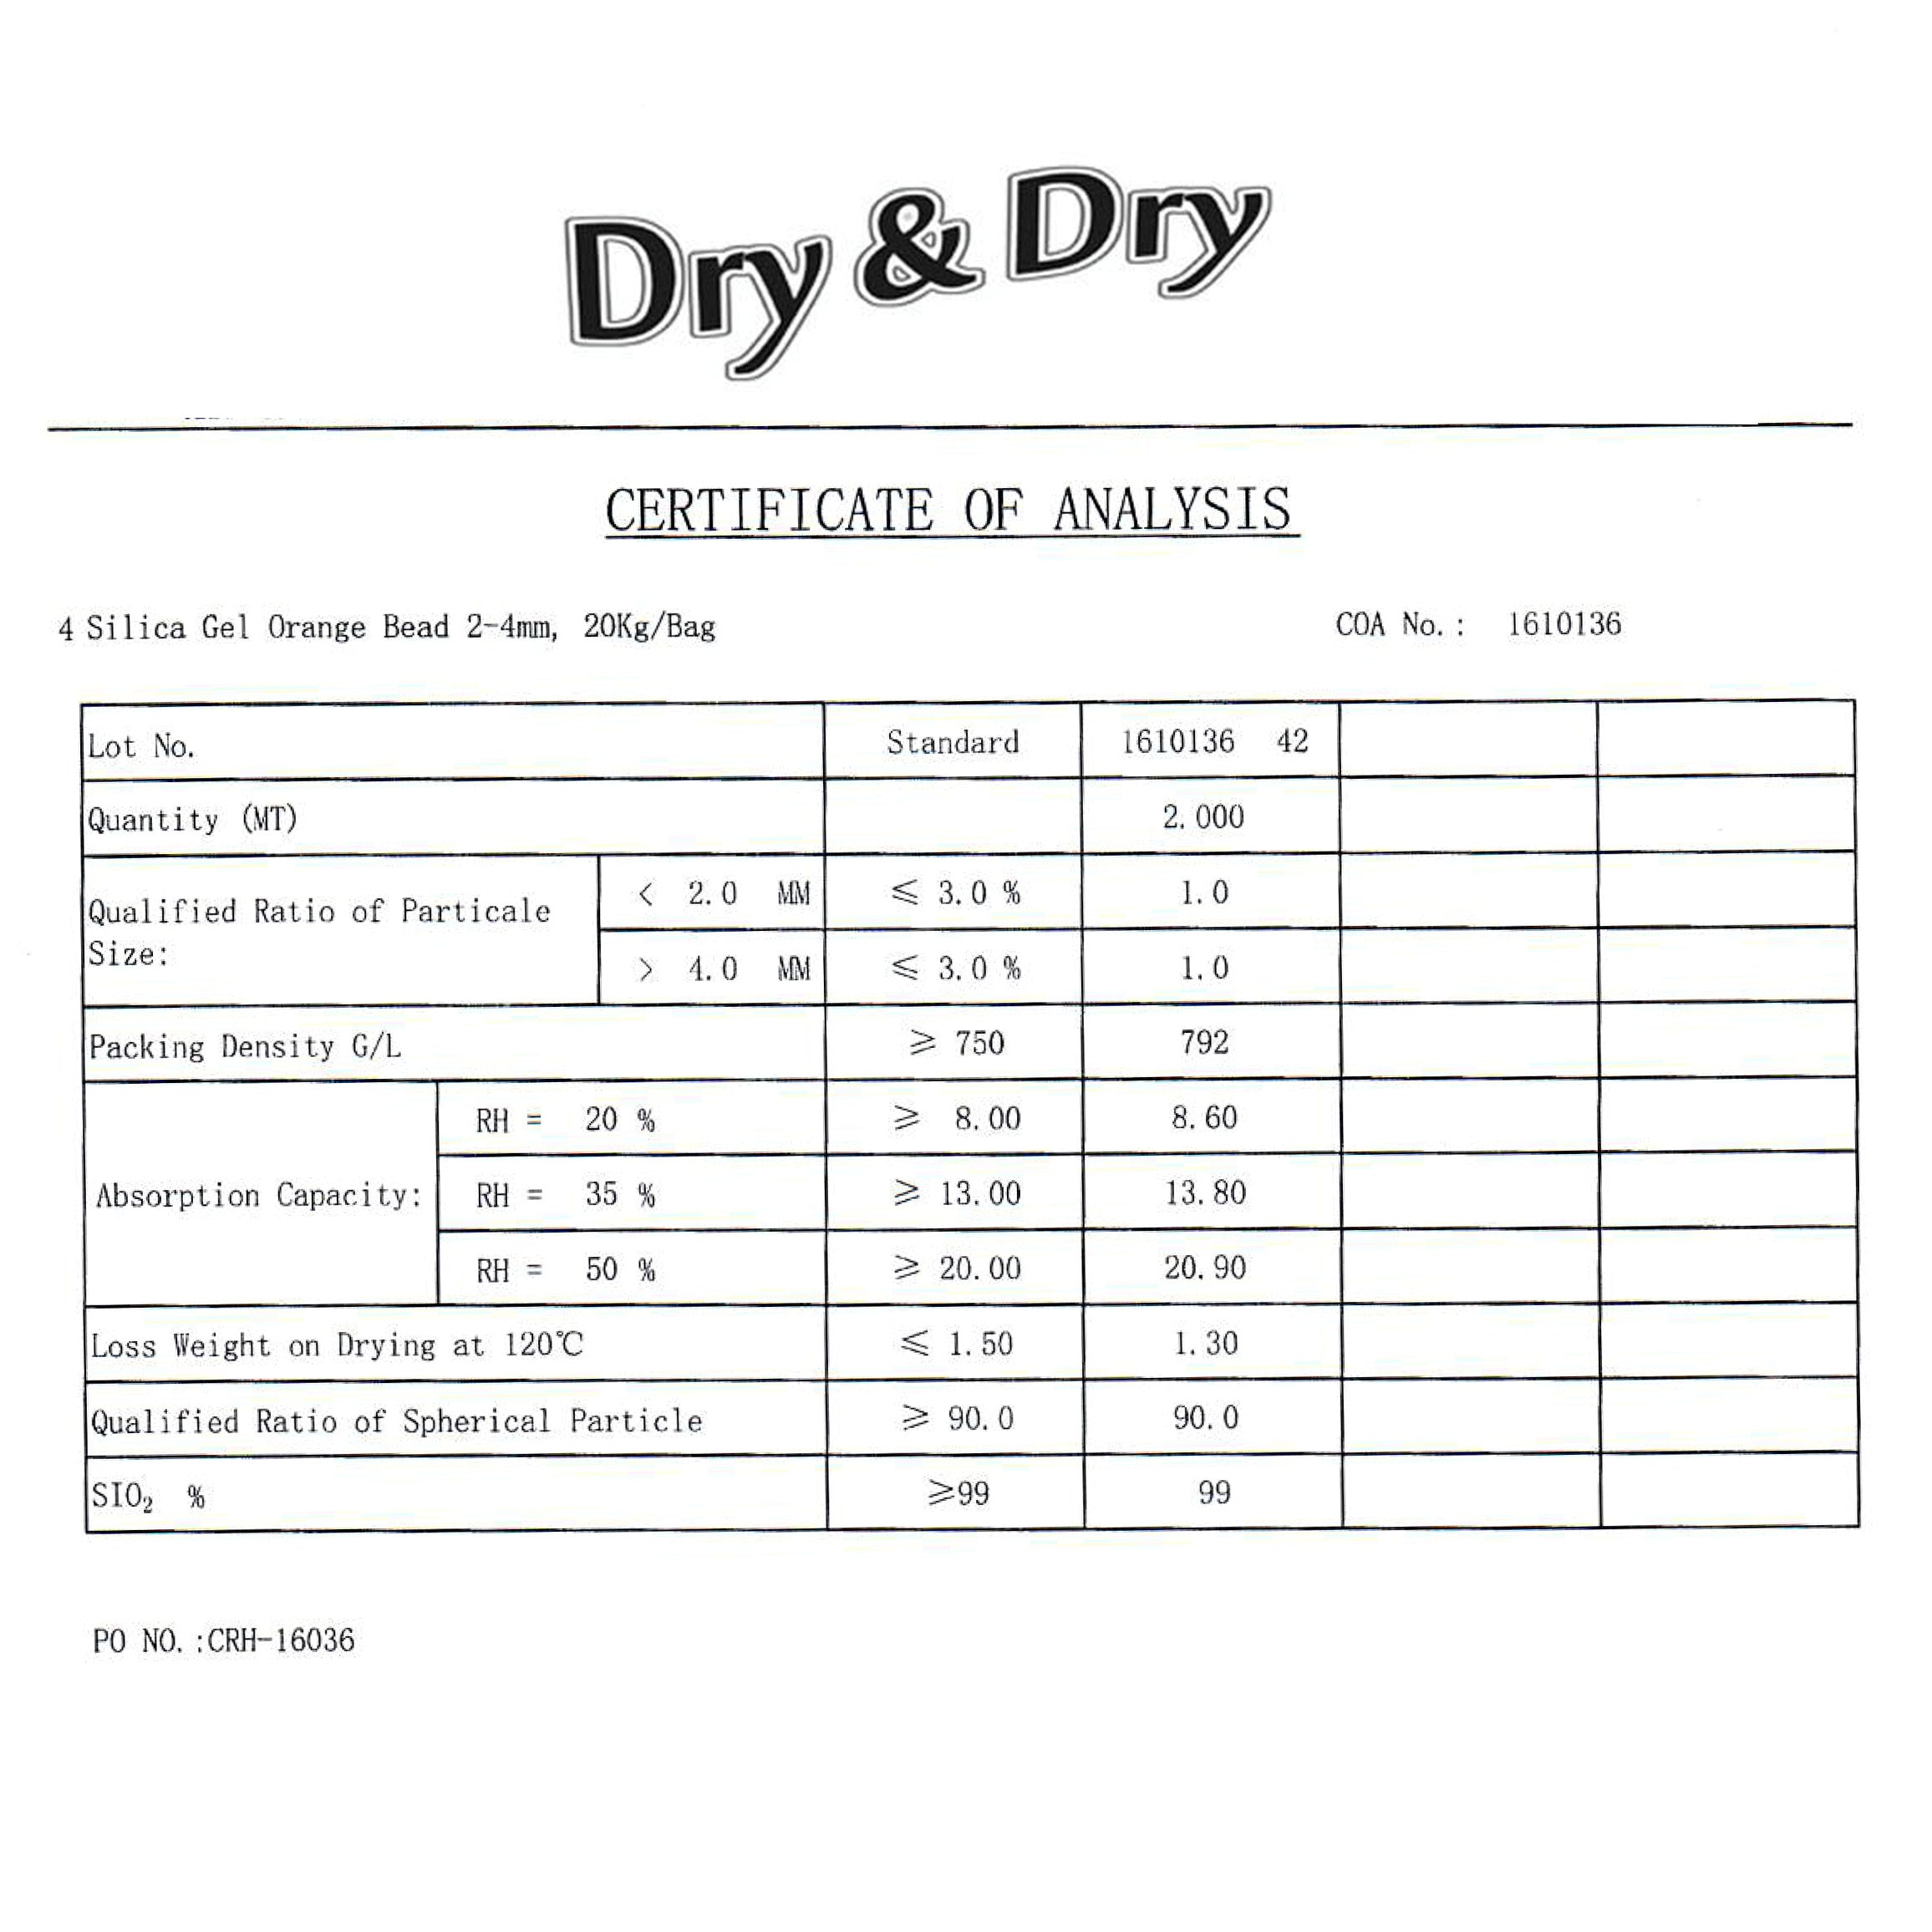 MSDS, SDS, ROHS & Certificate - Silica Gel Beads & Packets – Dry & Dry